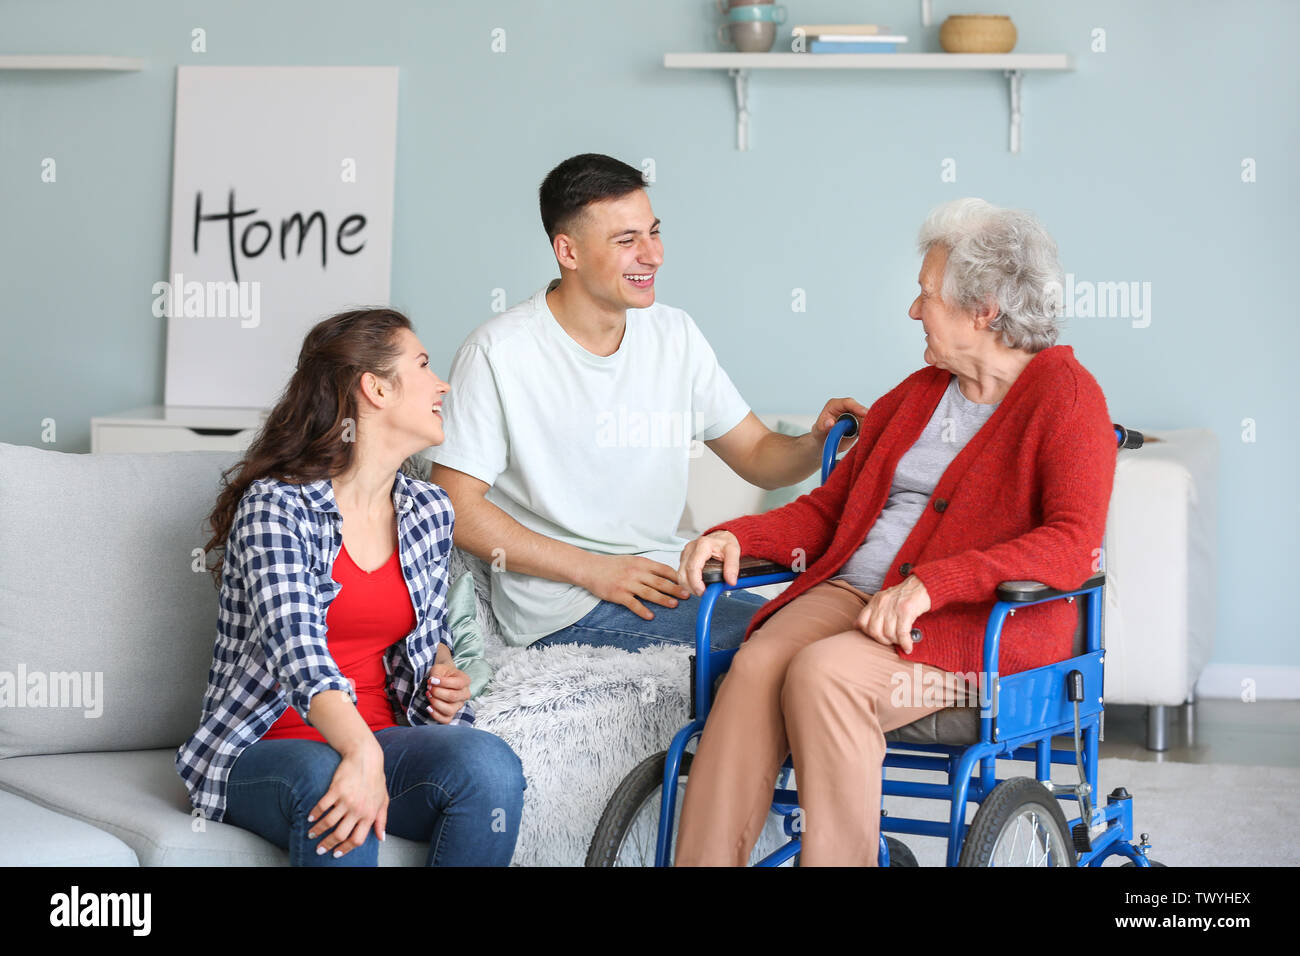 Senior woman with her grandchildren at home - Stock Image